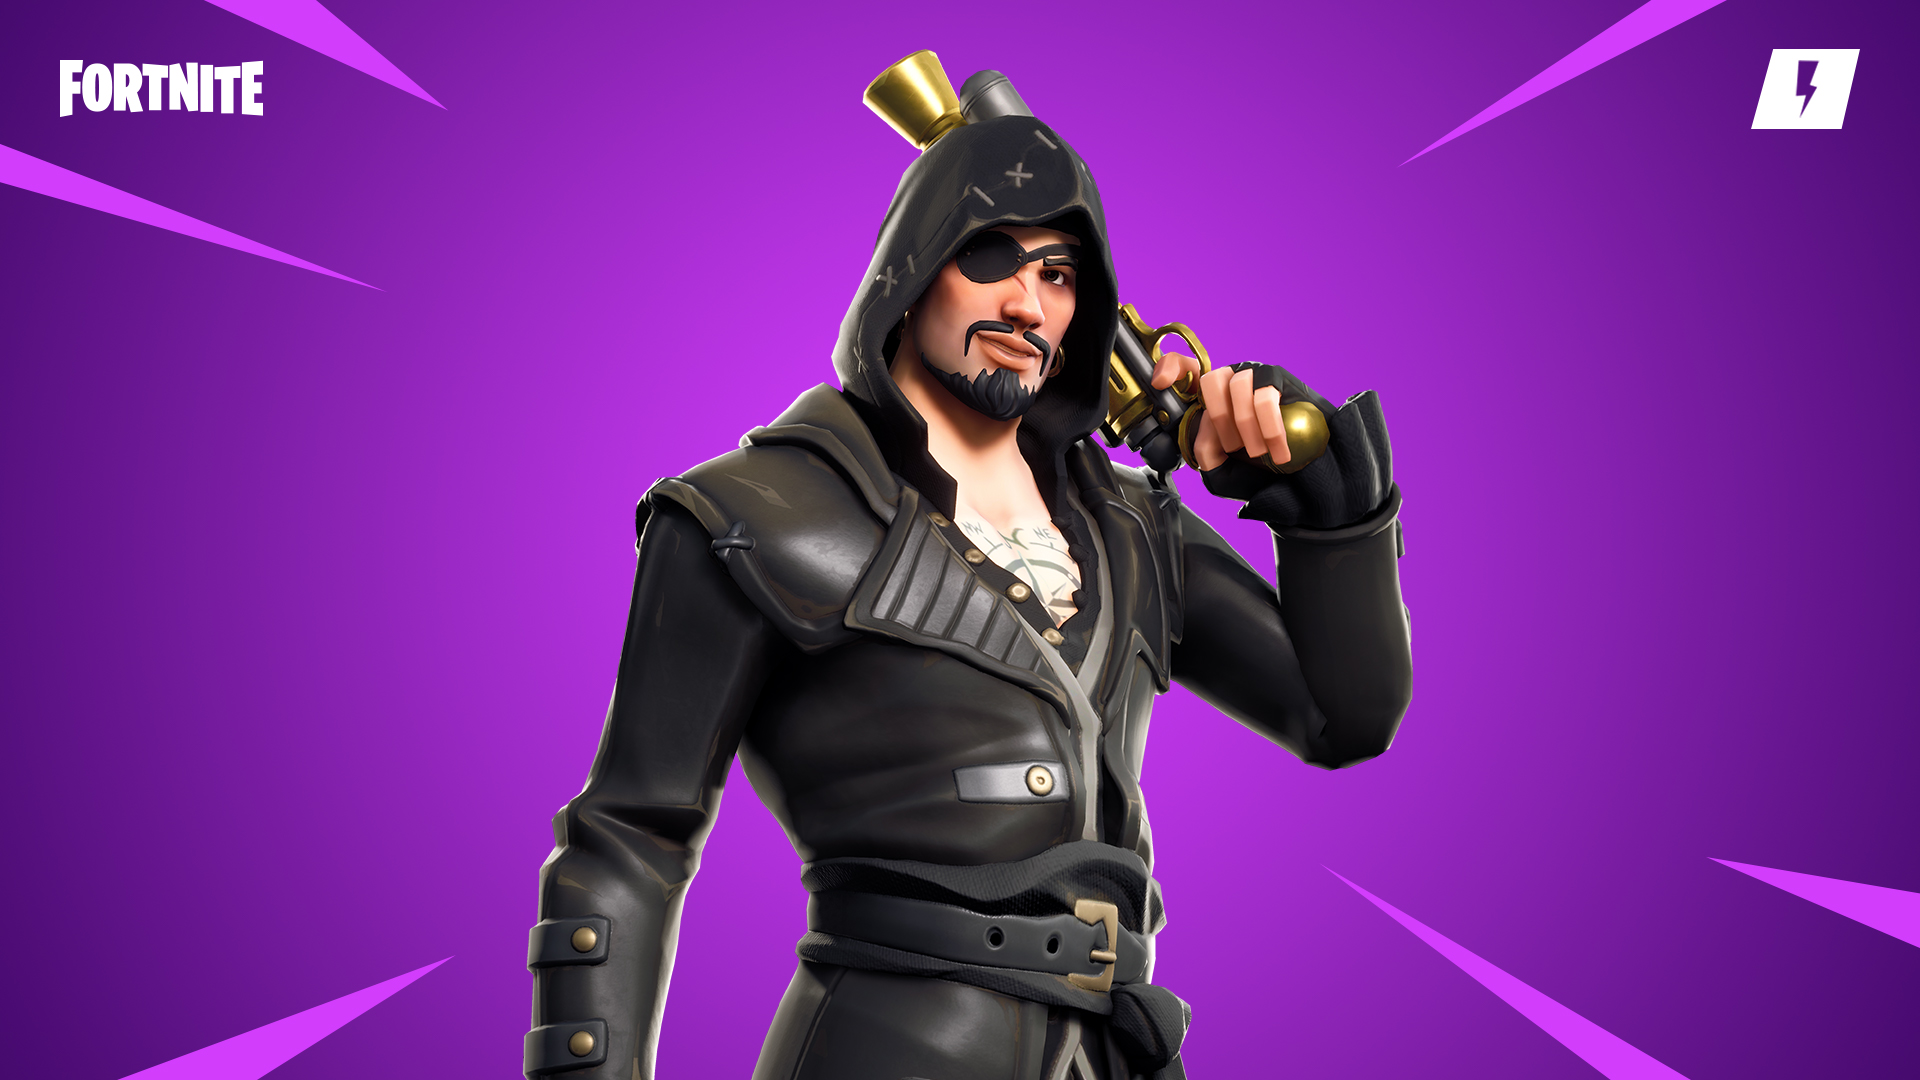 Fortnite: how to enable two-factor authentication - VG247